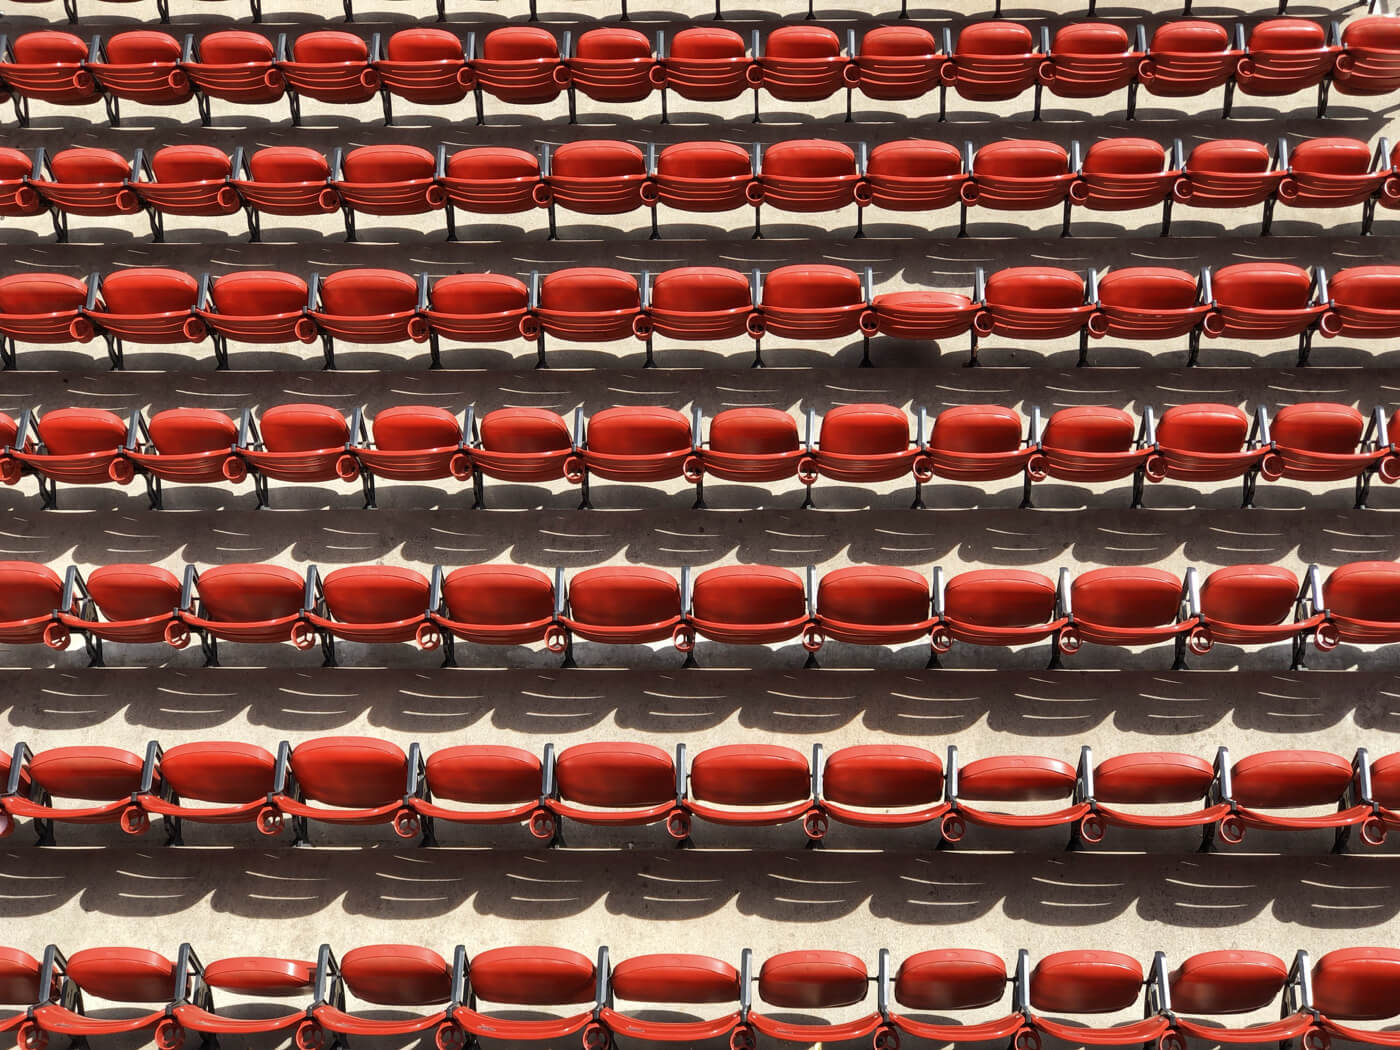 several rows of red seats